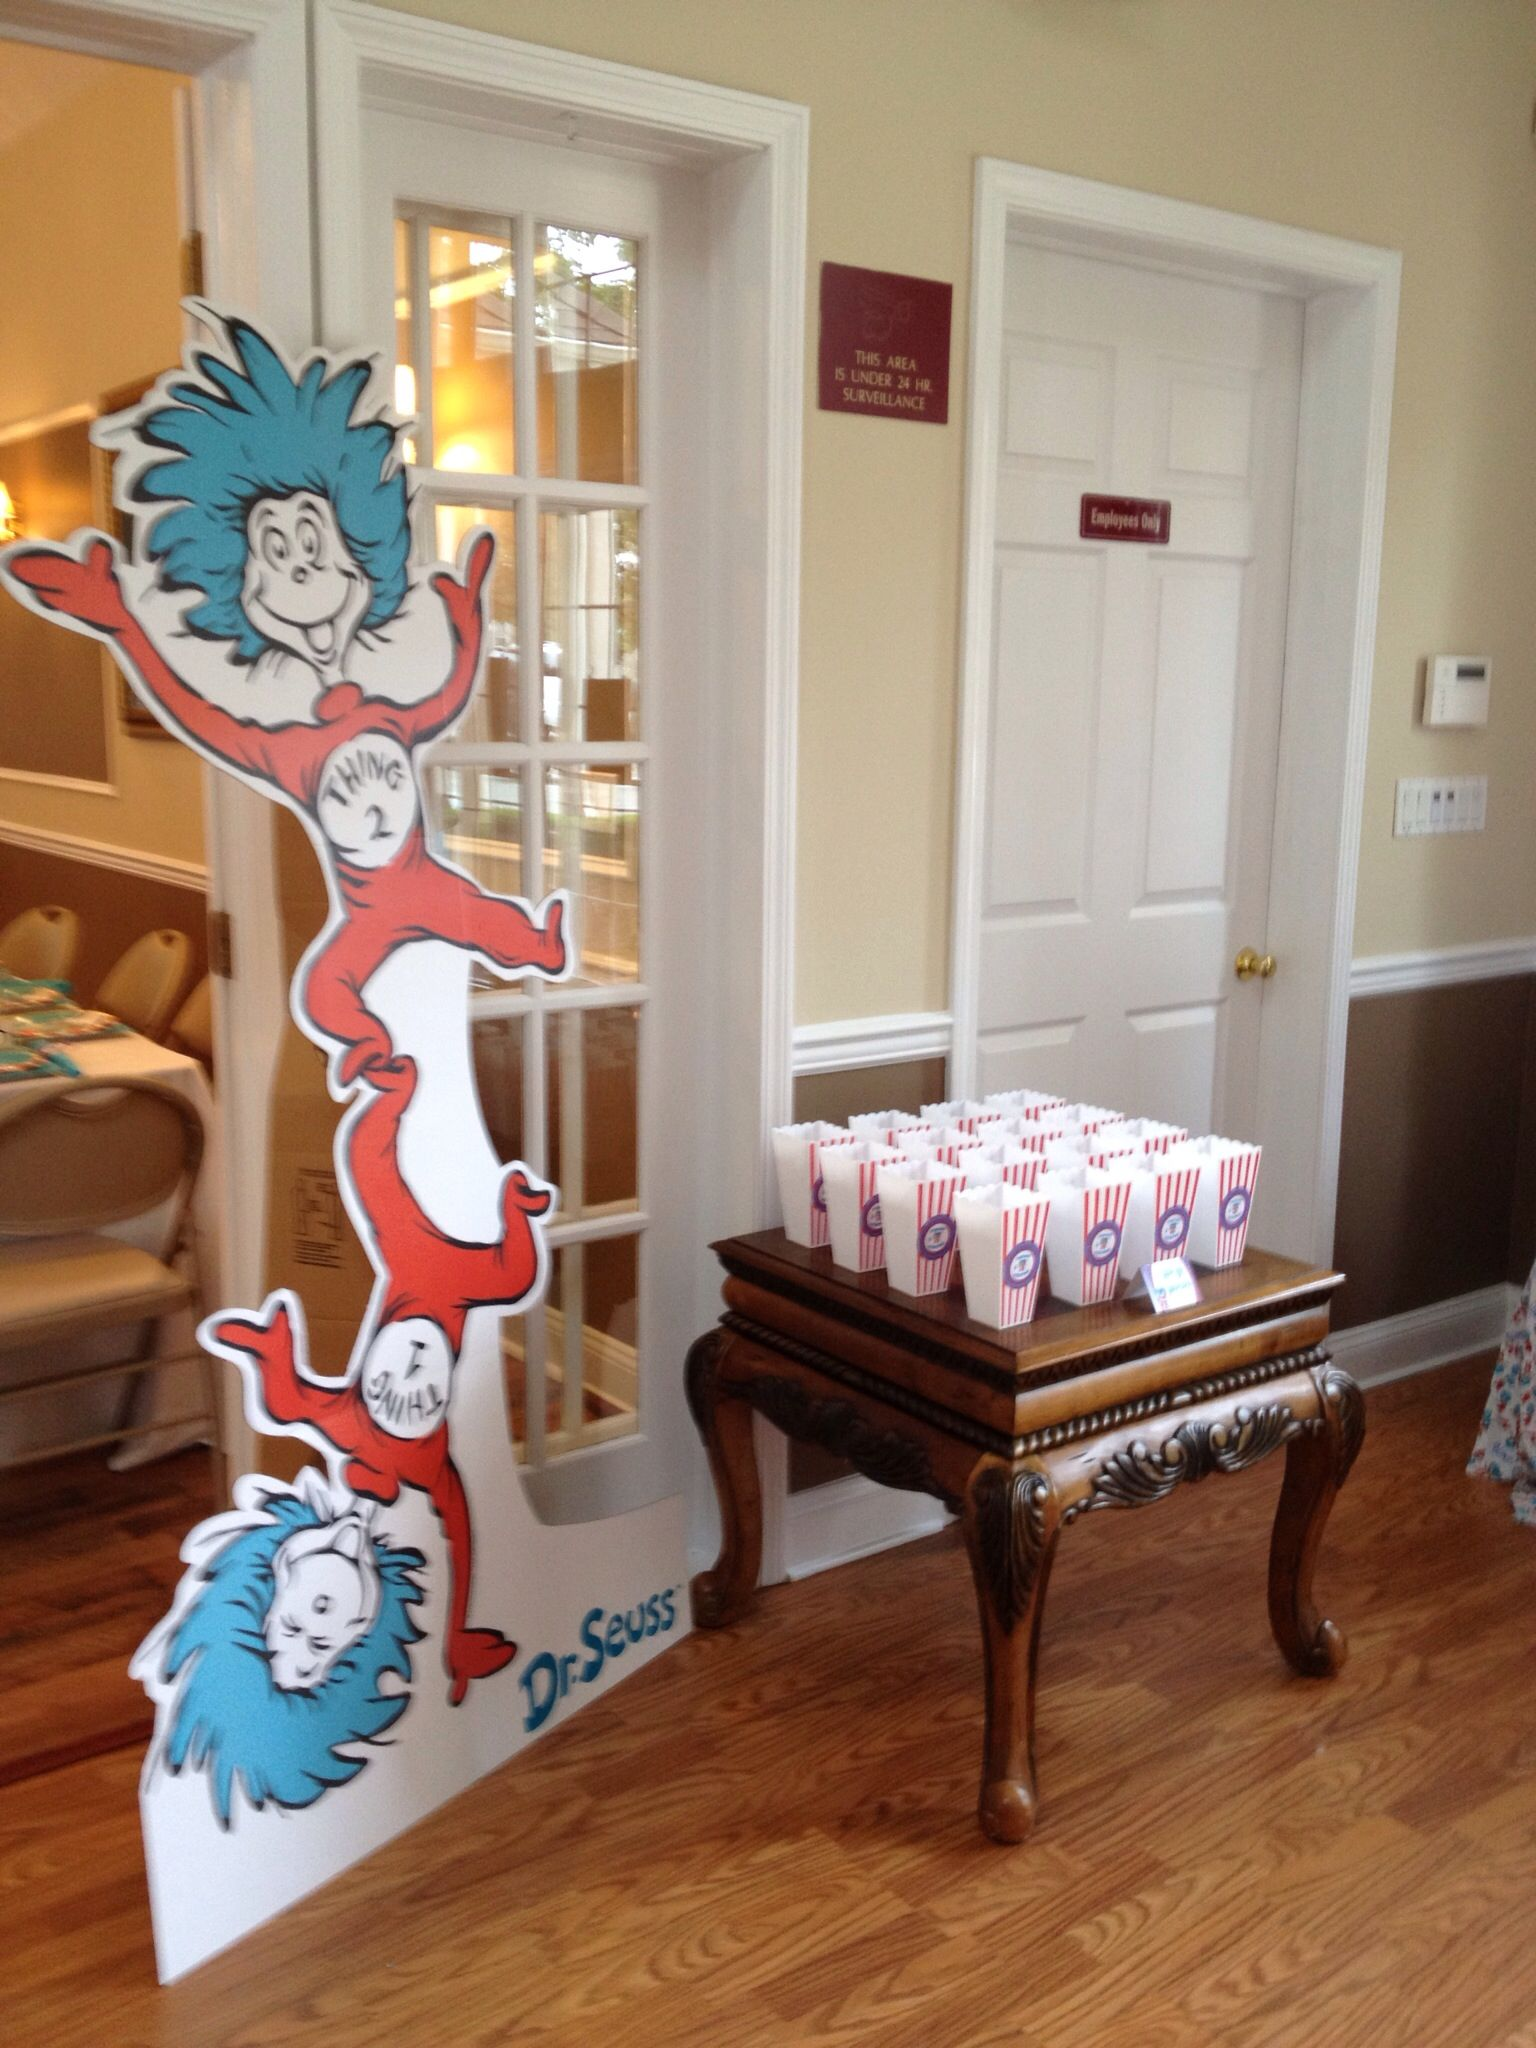 Thing 1 And Thing 2 Popcorn Home Decor Decals Decor Home Decor